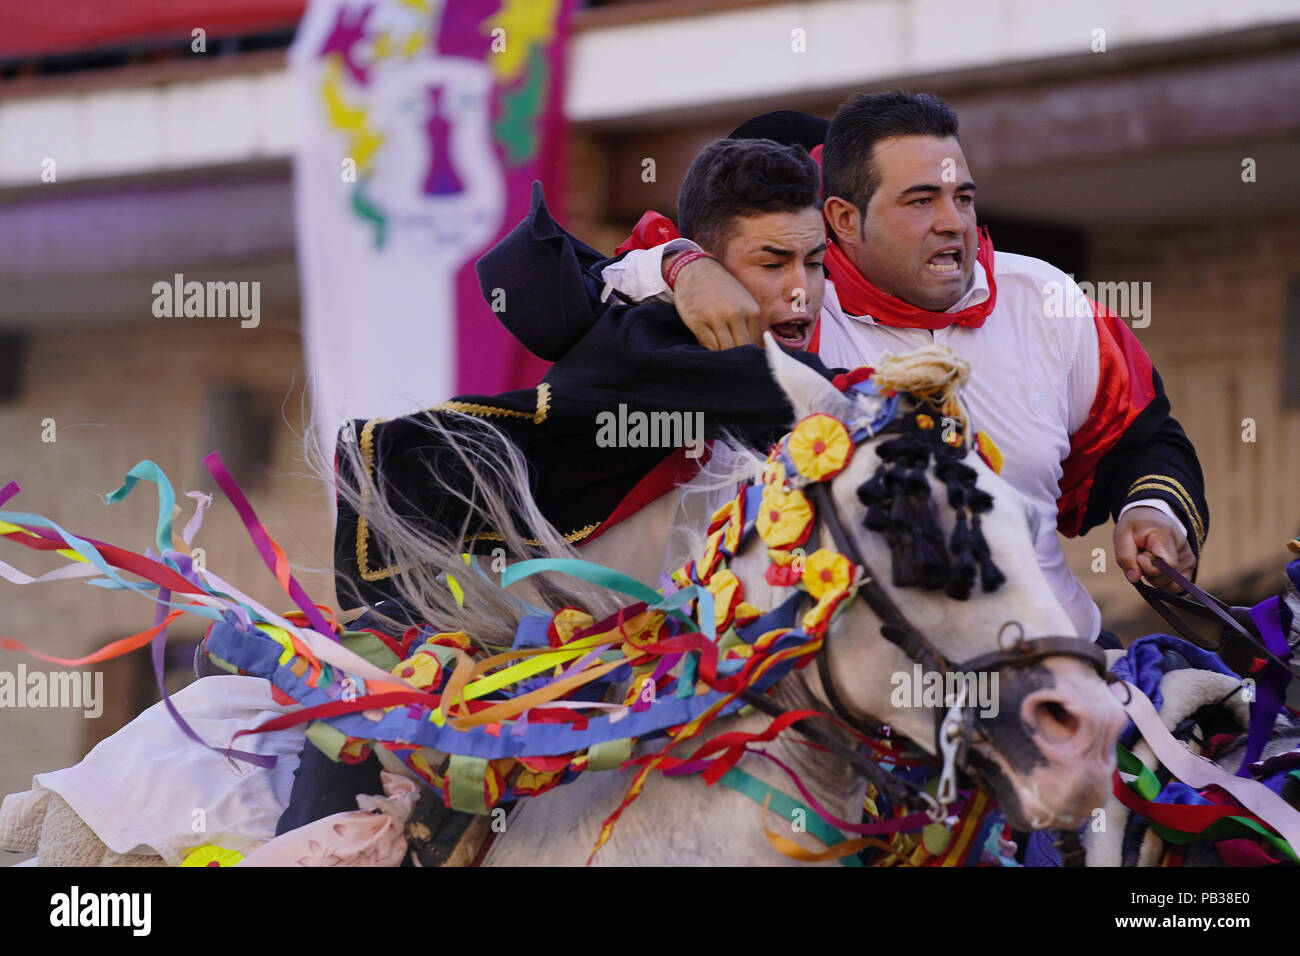 Carpio Tajo Toledo Spain 25th July 2018 Galloping Horse Riders